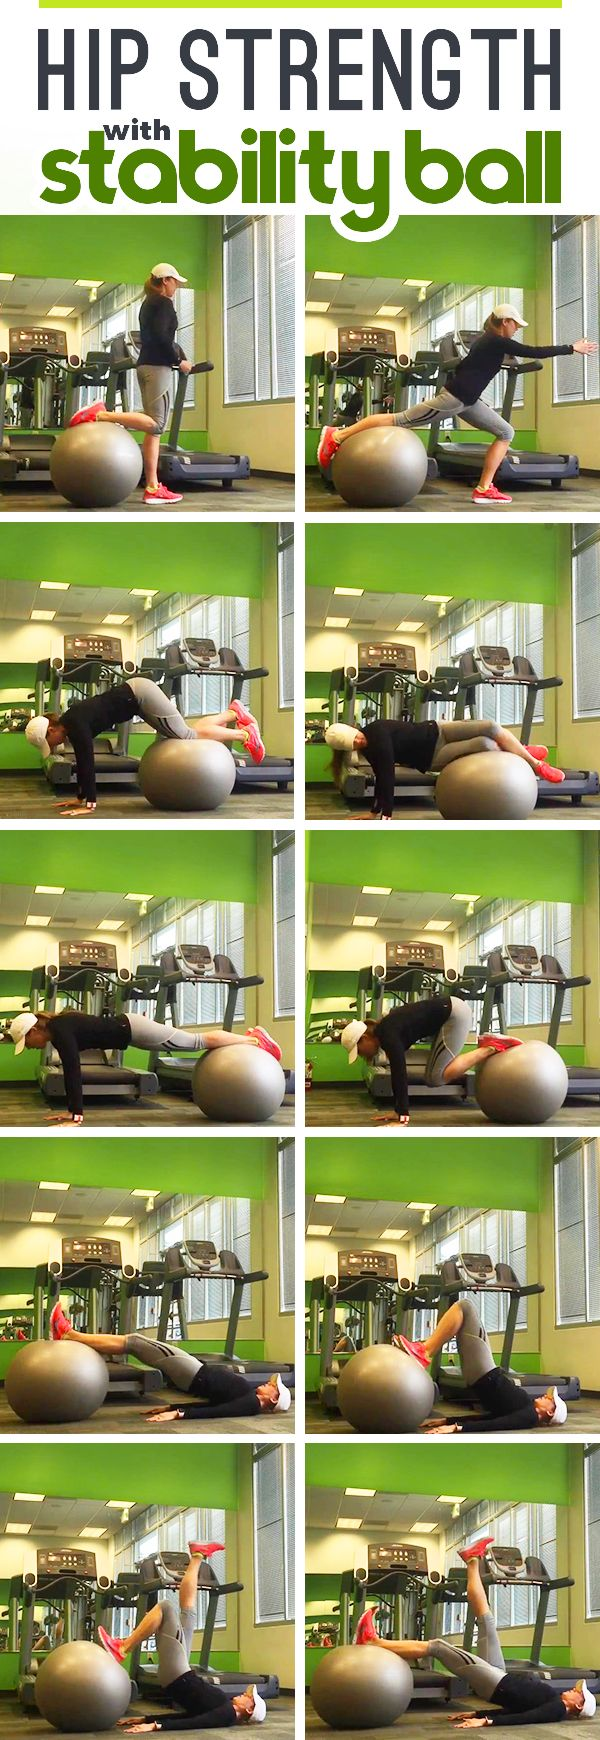 Improve Hip Strength with Stability Ball to prevent IT Band Syndrome and runner's knee